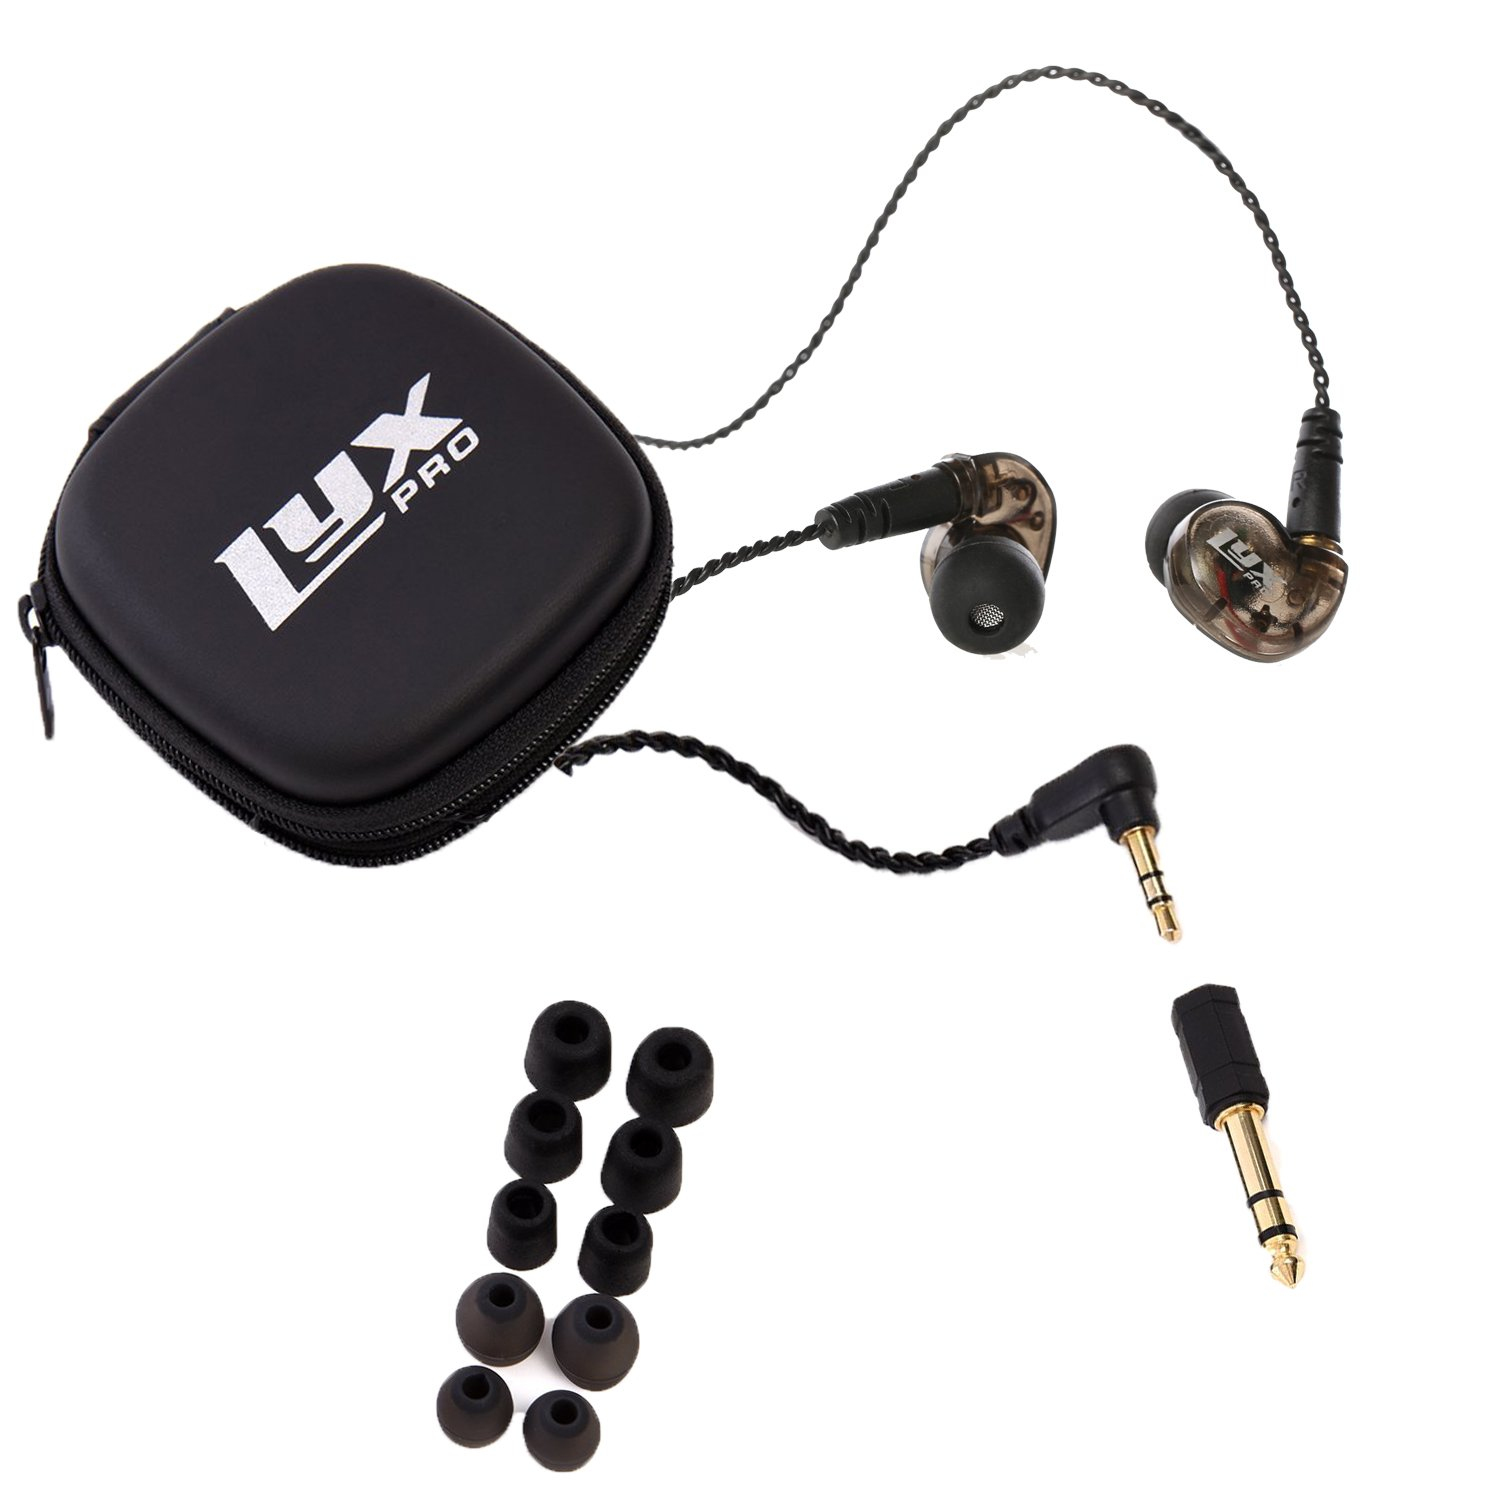 LyxPro ERP-10 In-Ear Monitors with Professional, Universal Fit Earphones for Musicians – Detachable Cables, Carrying Case & 6 Pairs of Tips for Studio or Stage by LyxPro